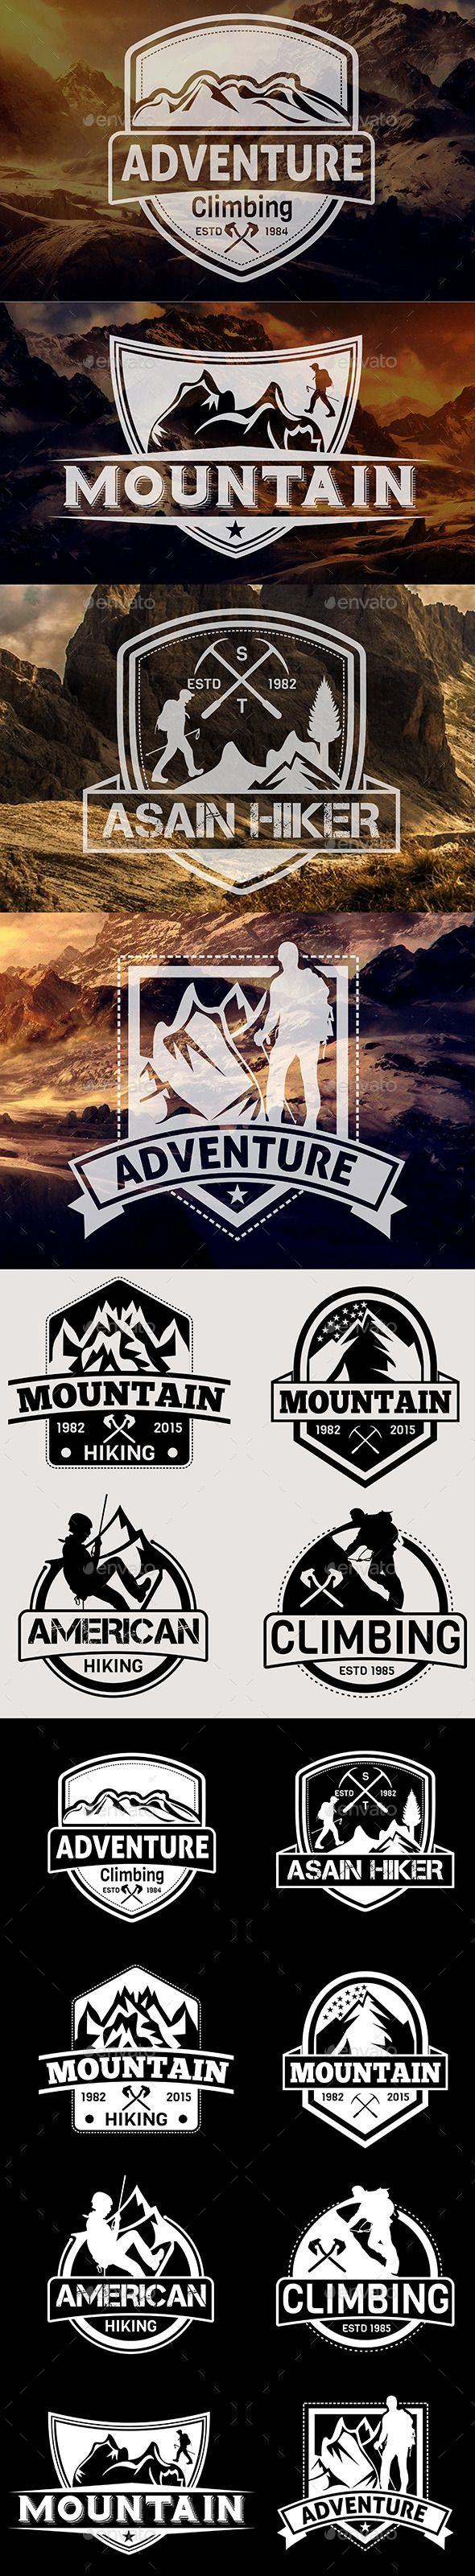 Mountain Hiking Badges Vol 22 - EPS Template • Only available here ➝ http://graphicriver.net/item/mountain-hiking-badges-vol-22/13021342?ref=pxcr